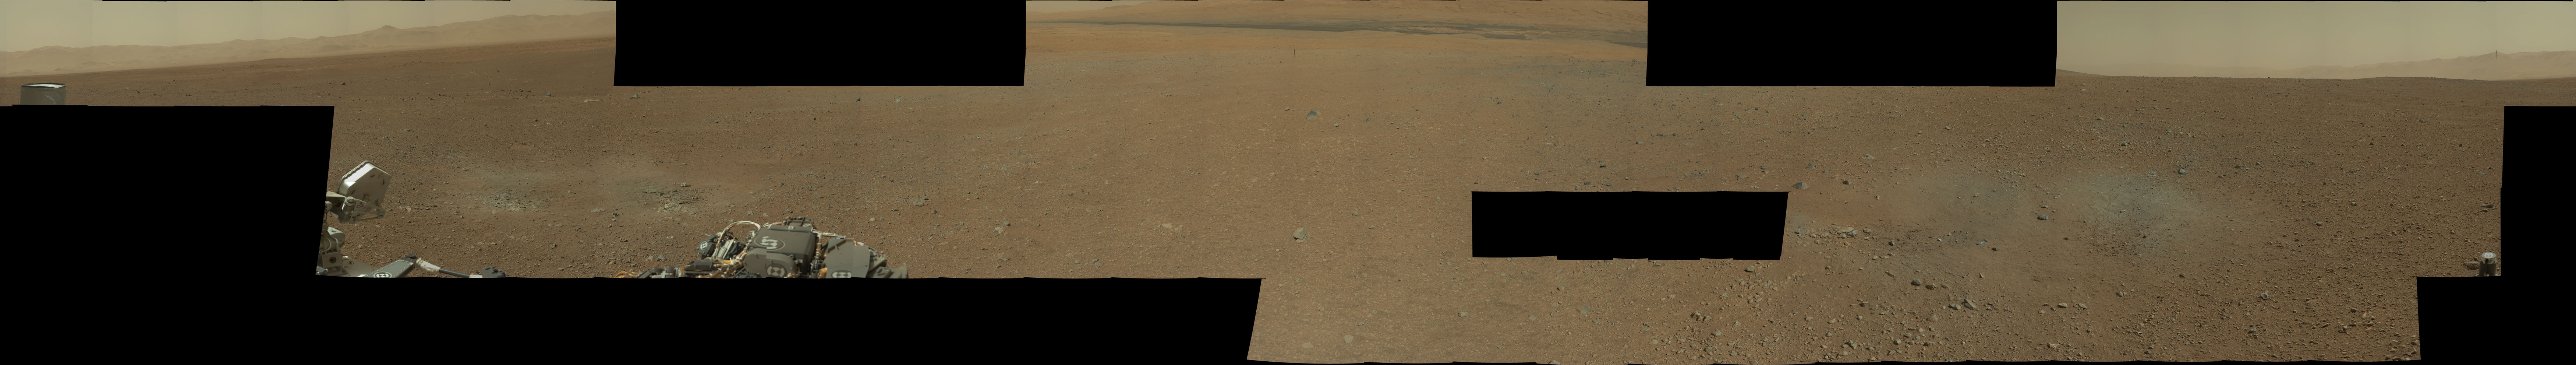 curiosity-planete-mars-cratere-gale-1re-première-photo-panoramique-hd-haute-def